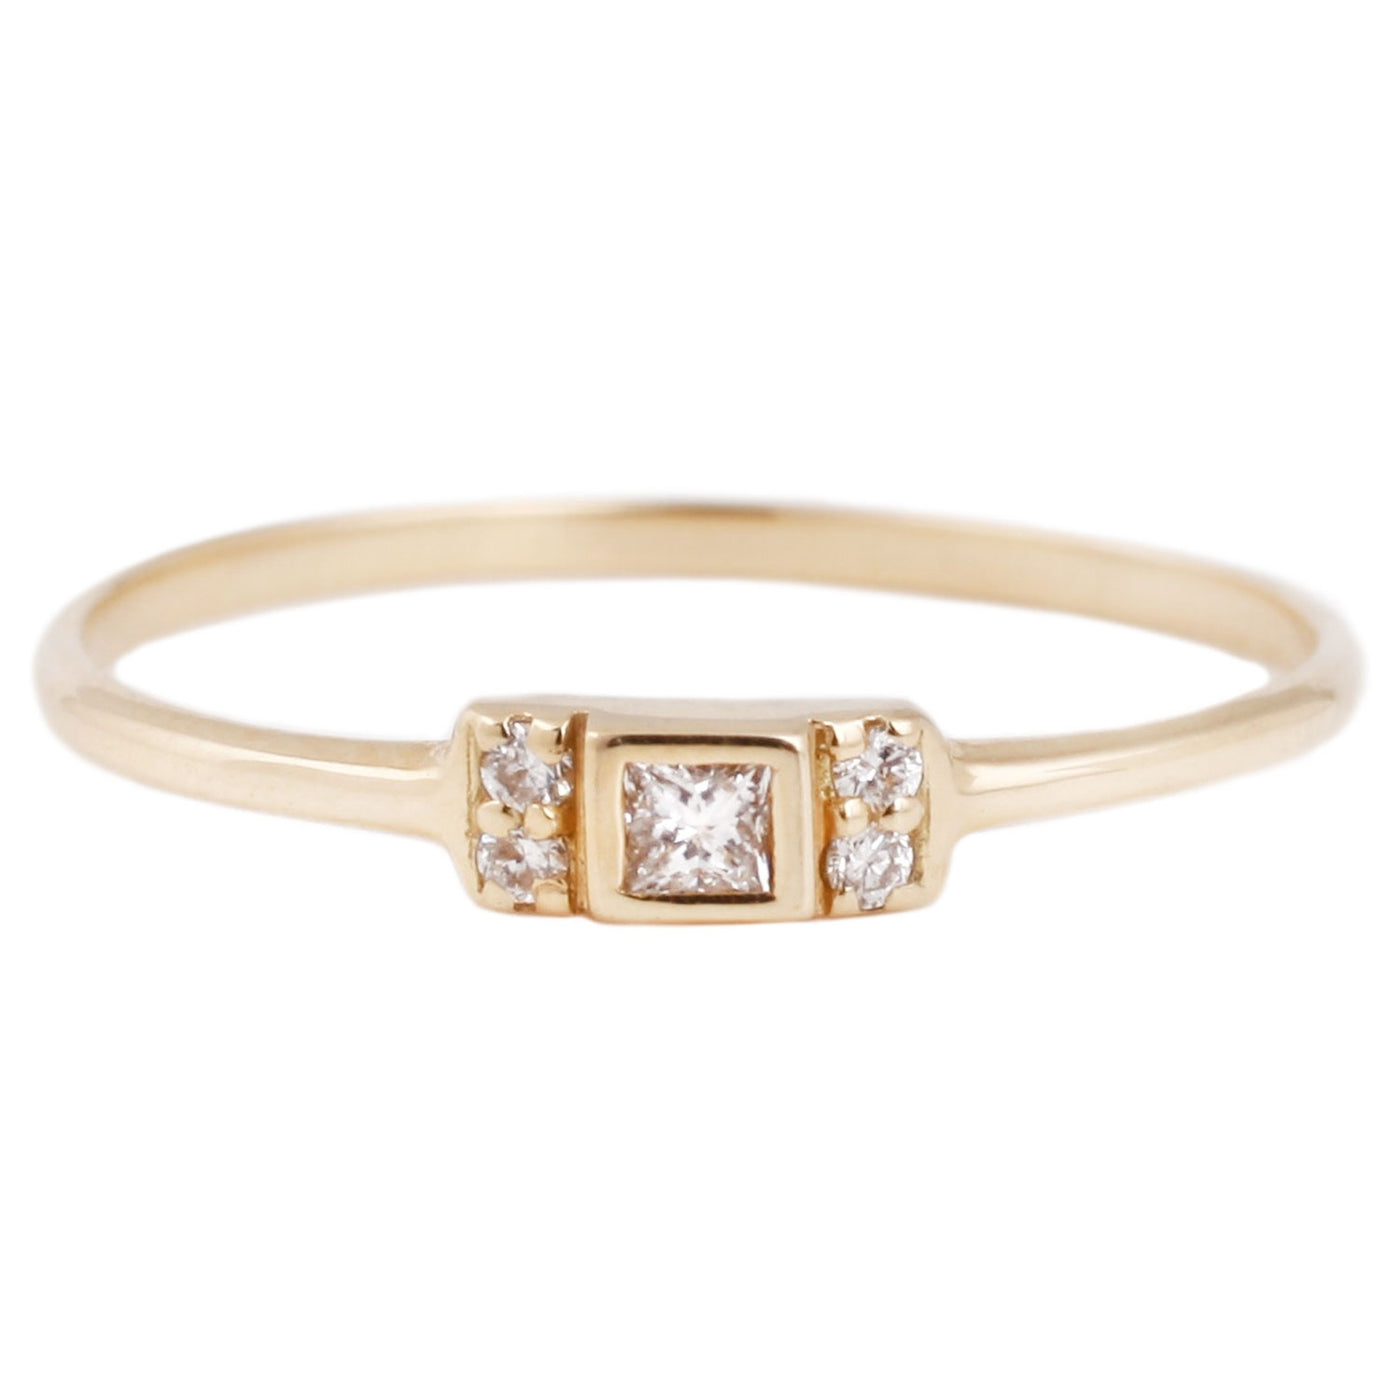 Aili Gold Vivian Ring with white diamonds